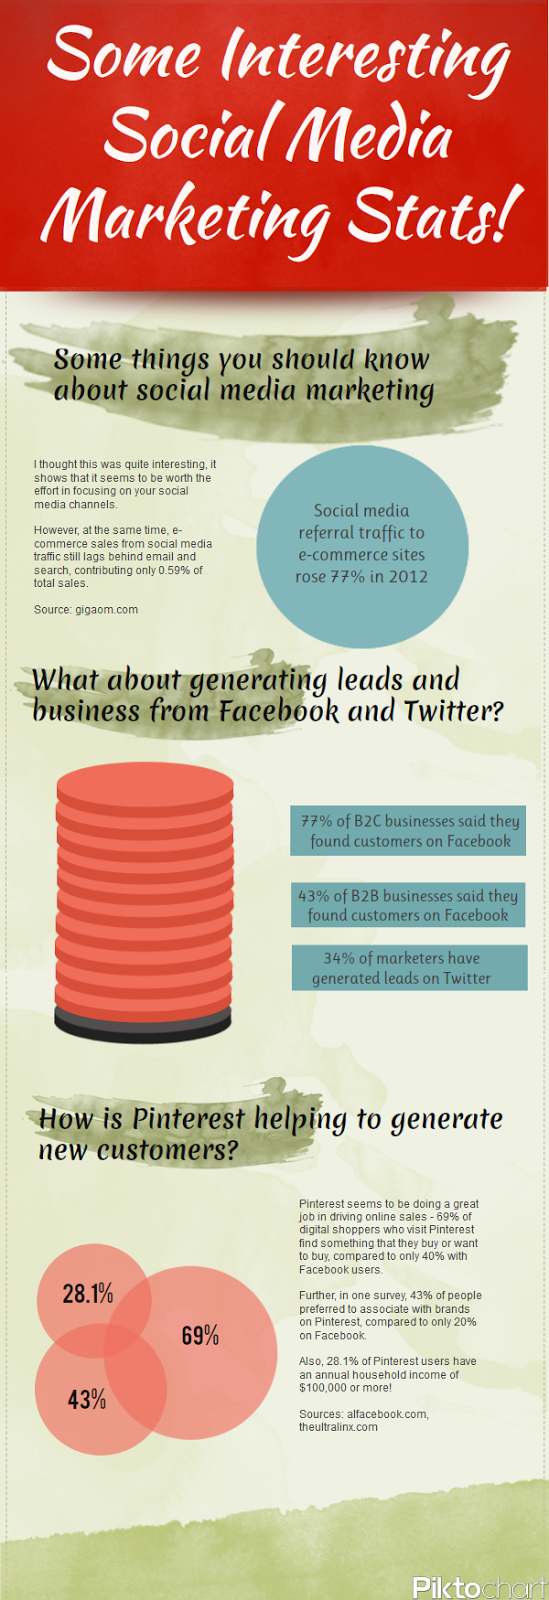 Infographic: Some Interesting Social Media Marketing Stats